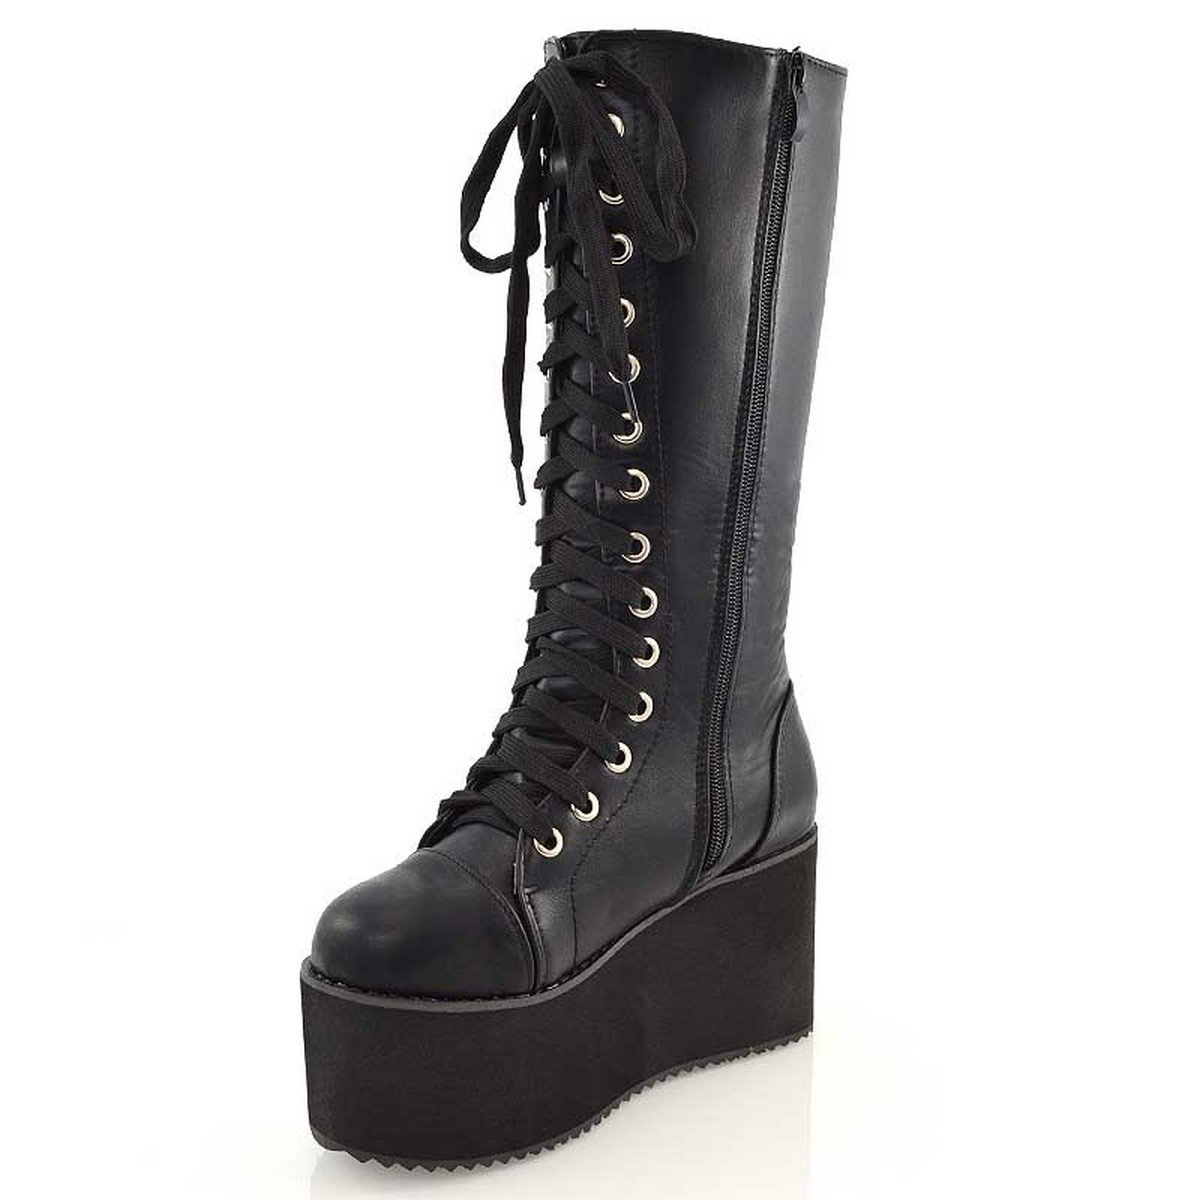 3f594e784a2 ESSEX GLAM Womens Synthetic Knee High Platform Wedge Lace Up Biker Boots